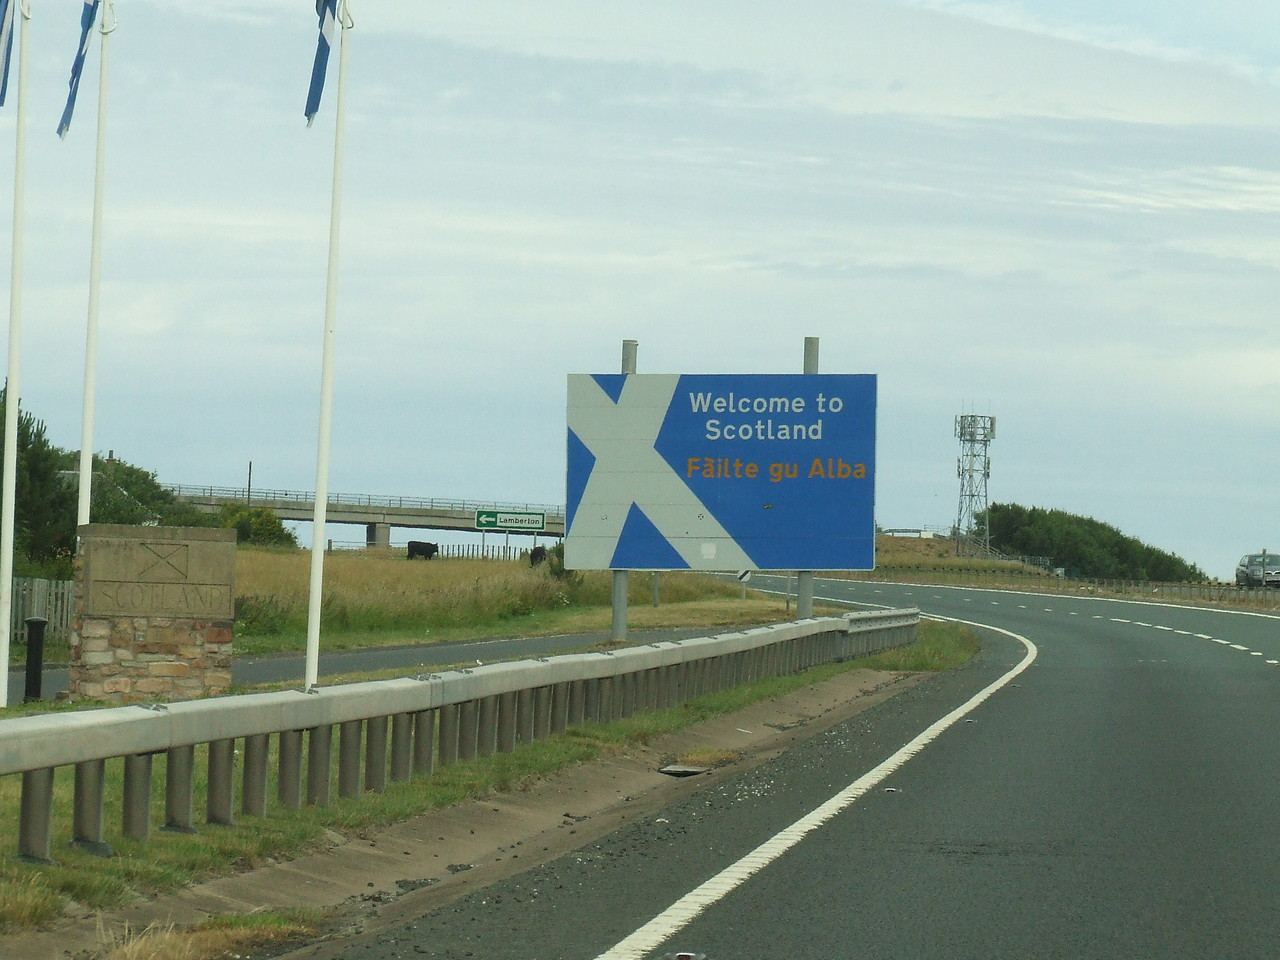 Back to Scotland again!